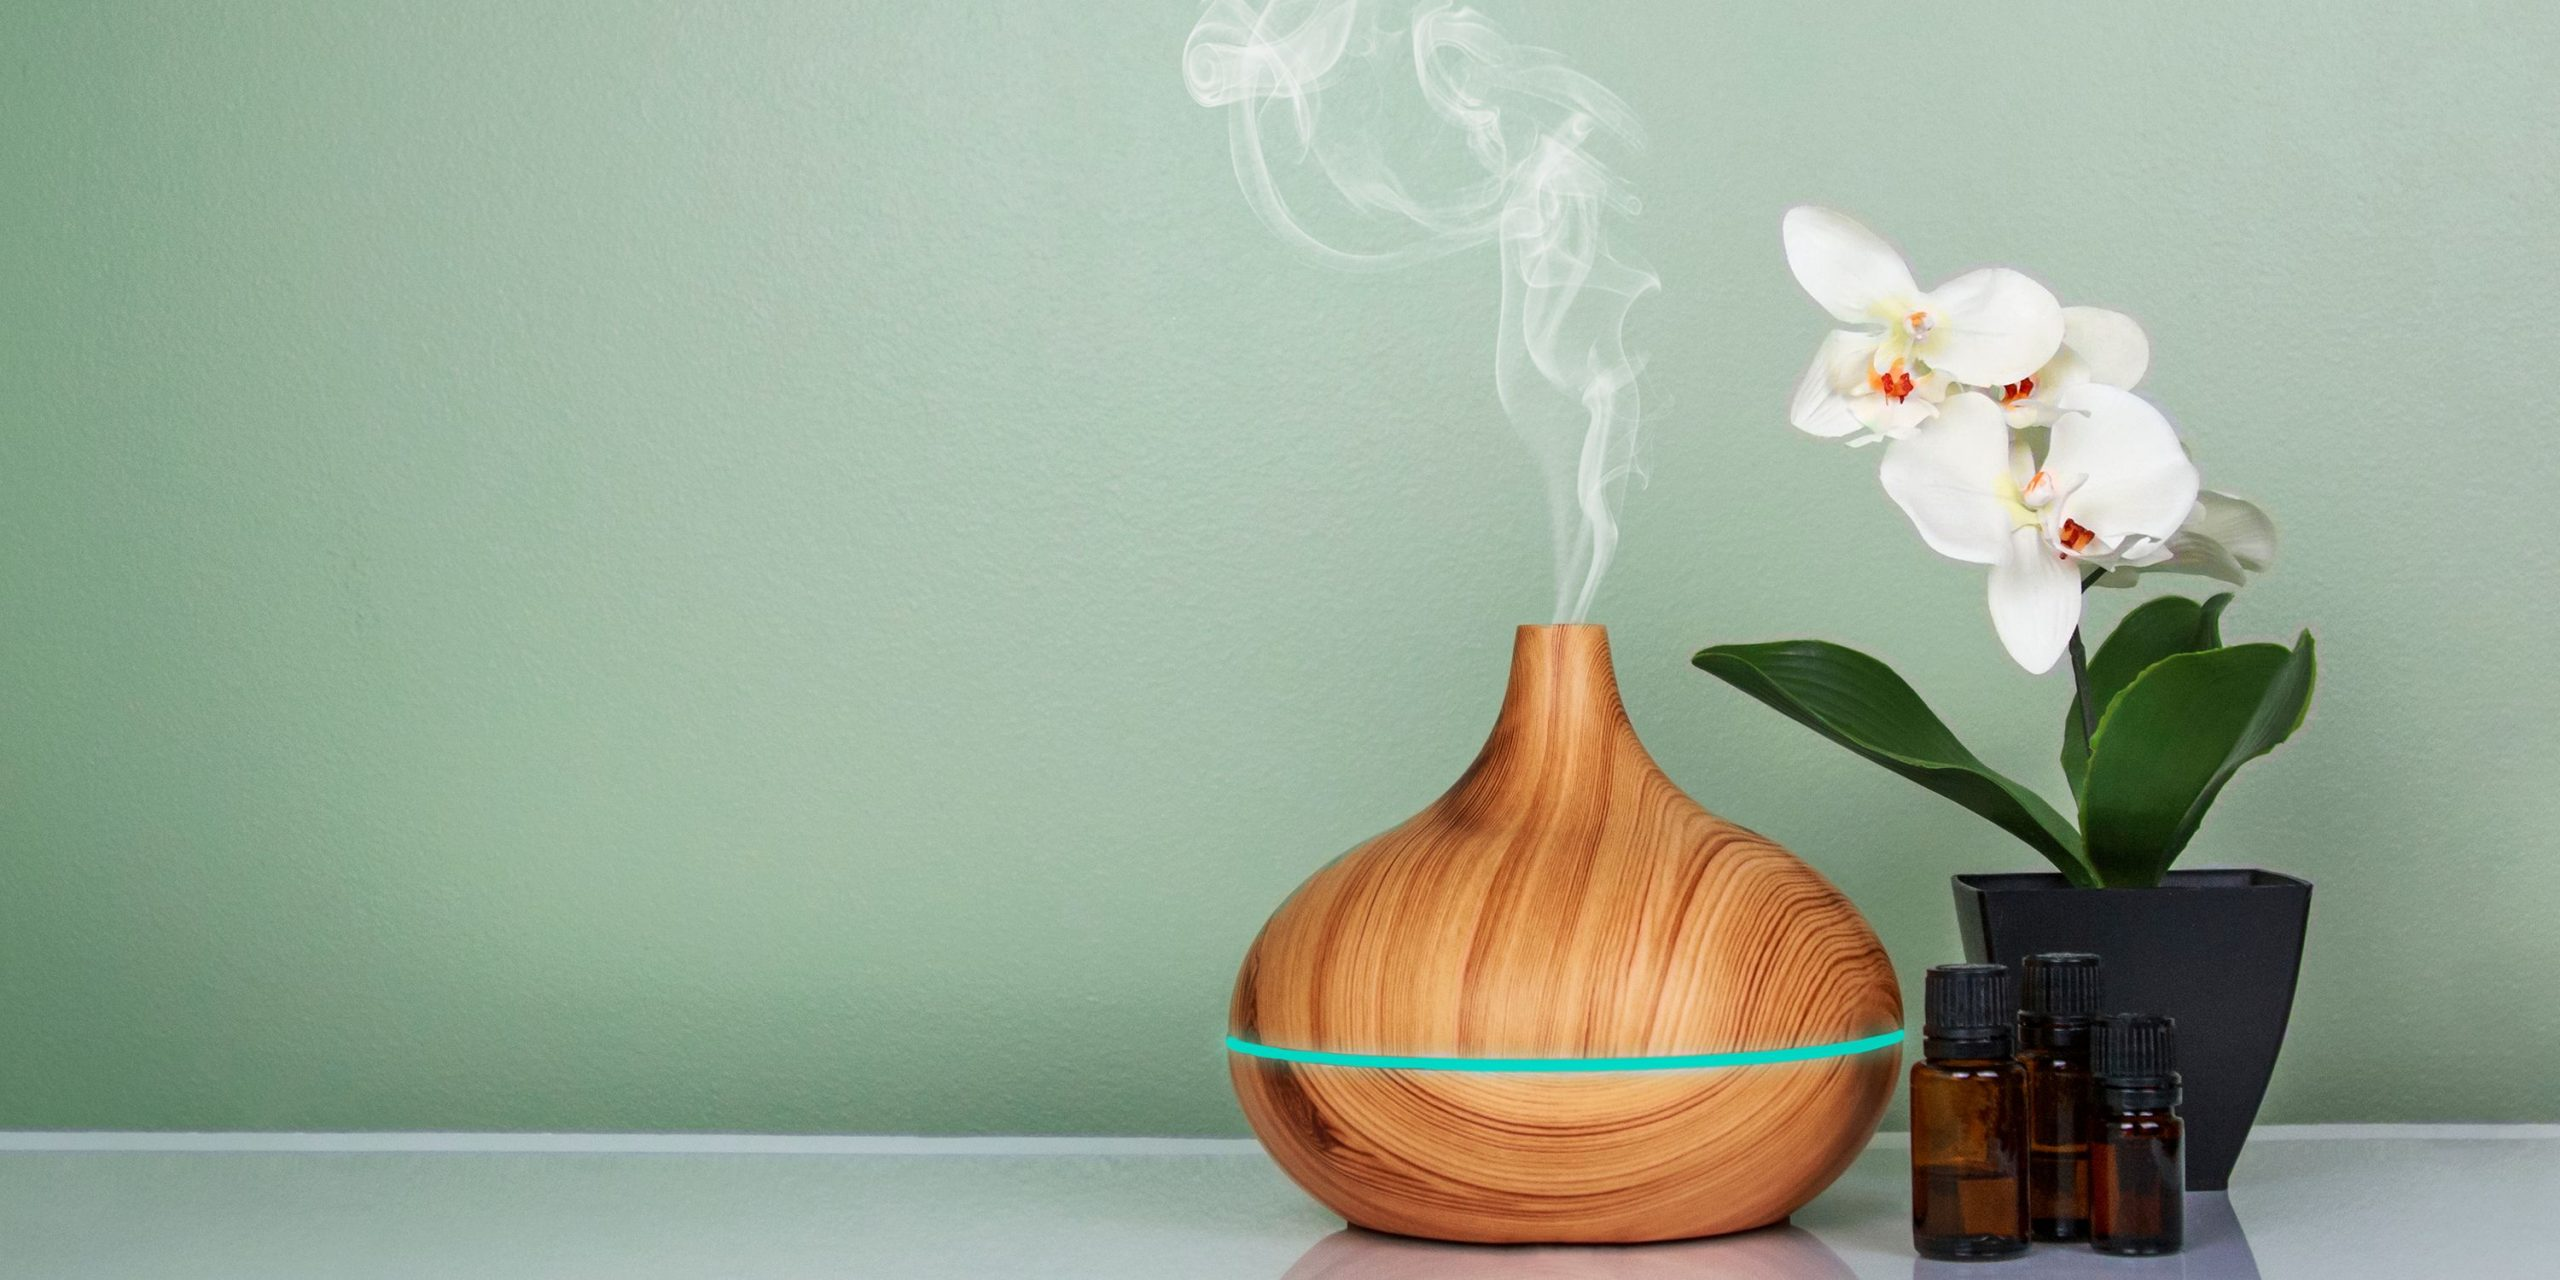 Enhance The Ambiance Of Your Room With An Oil Diffuser!